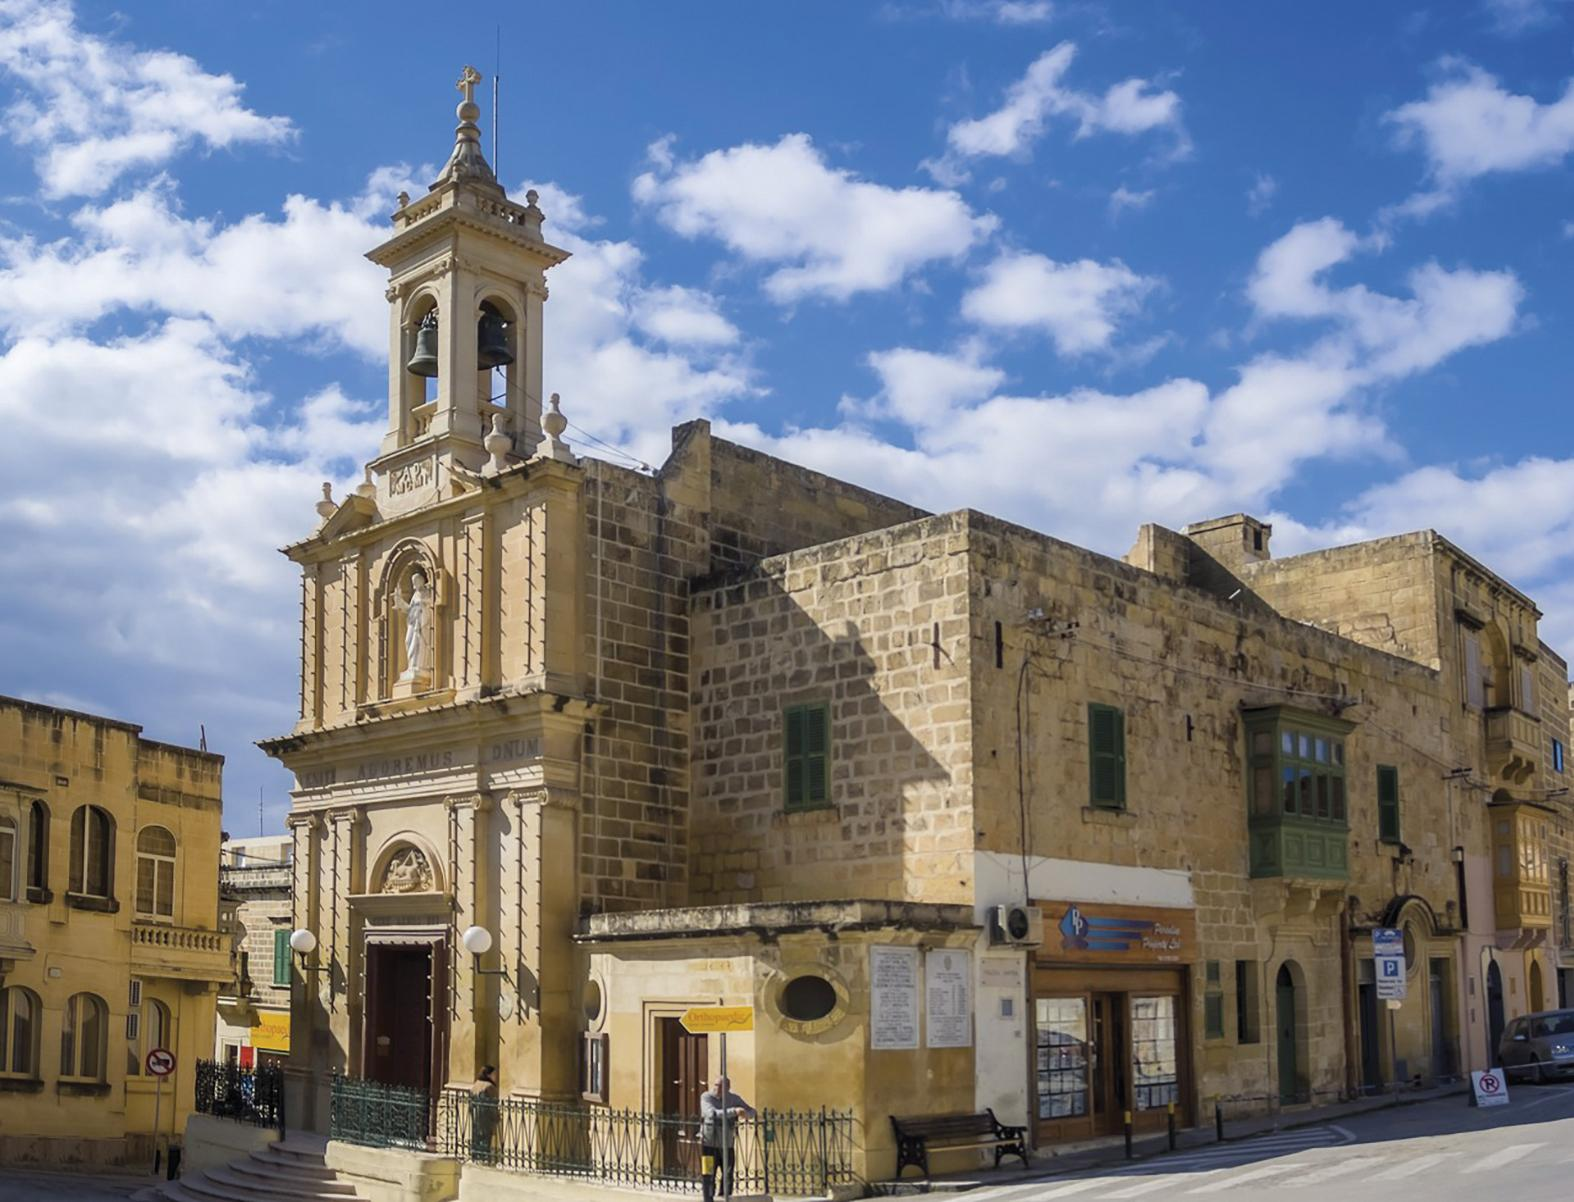 Ċensa spent many an hour in quiet devotion to the Holy Eucharist at the church of the Nativity of Our Lady, better known as Ta' Savina, in Victoria.